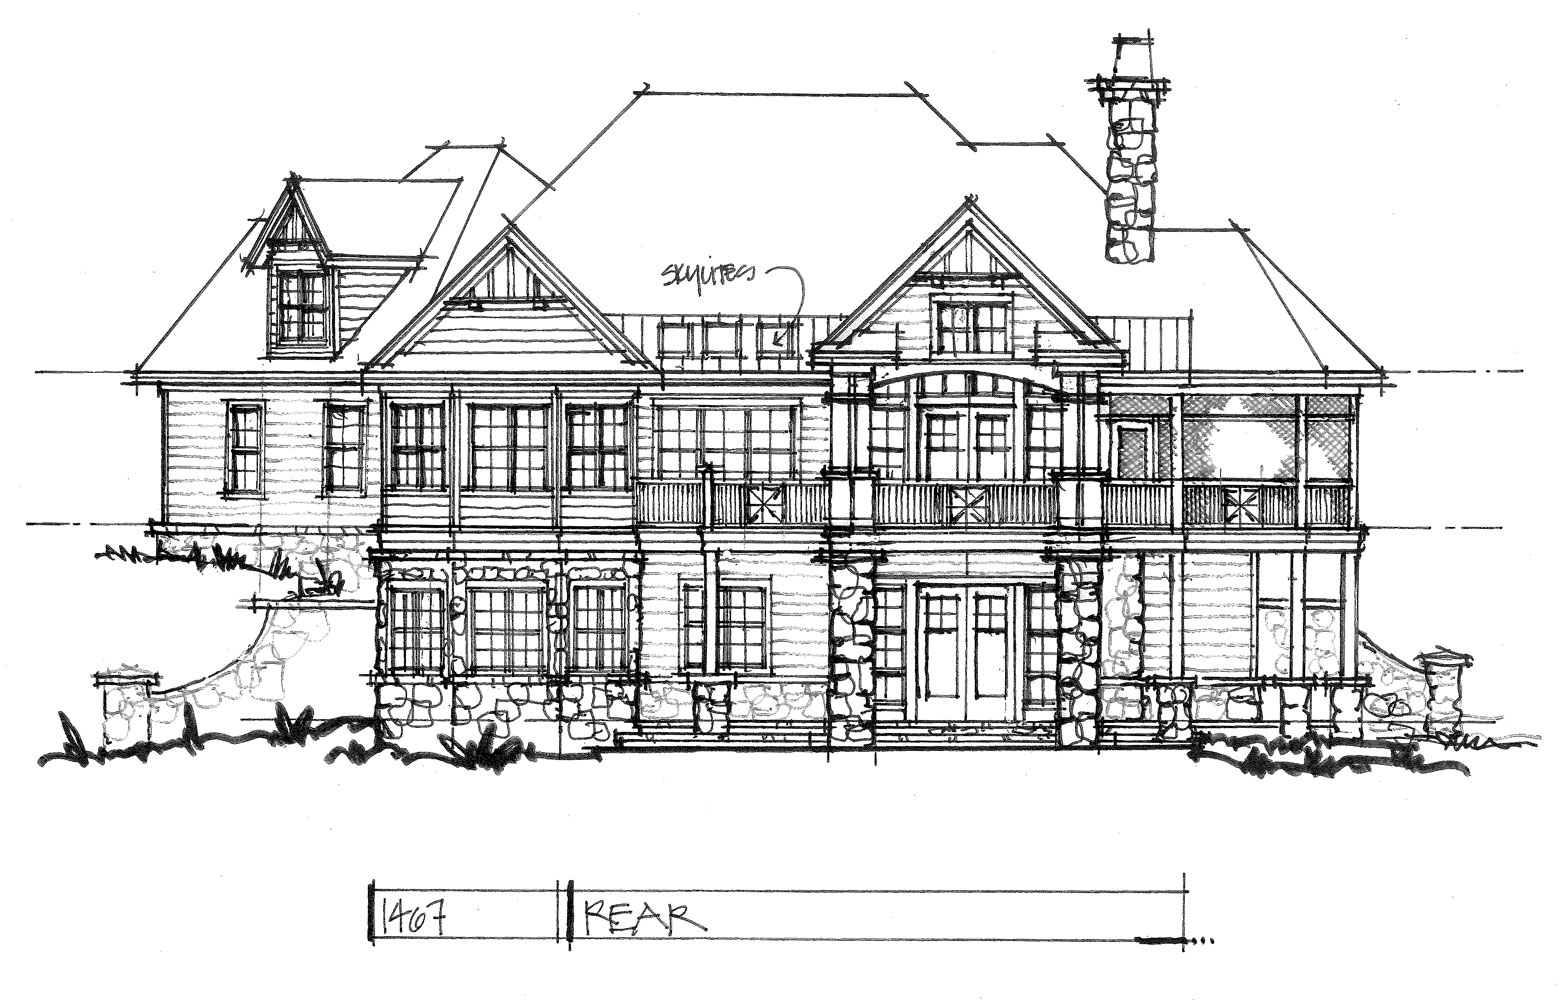 Check out the rear elevation of house plan 1467.